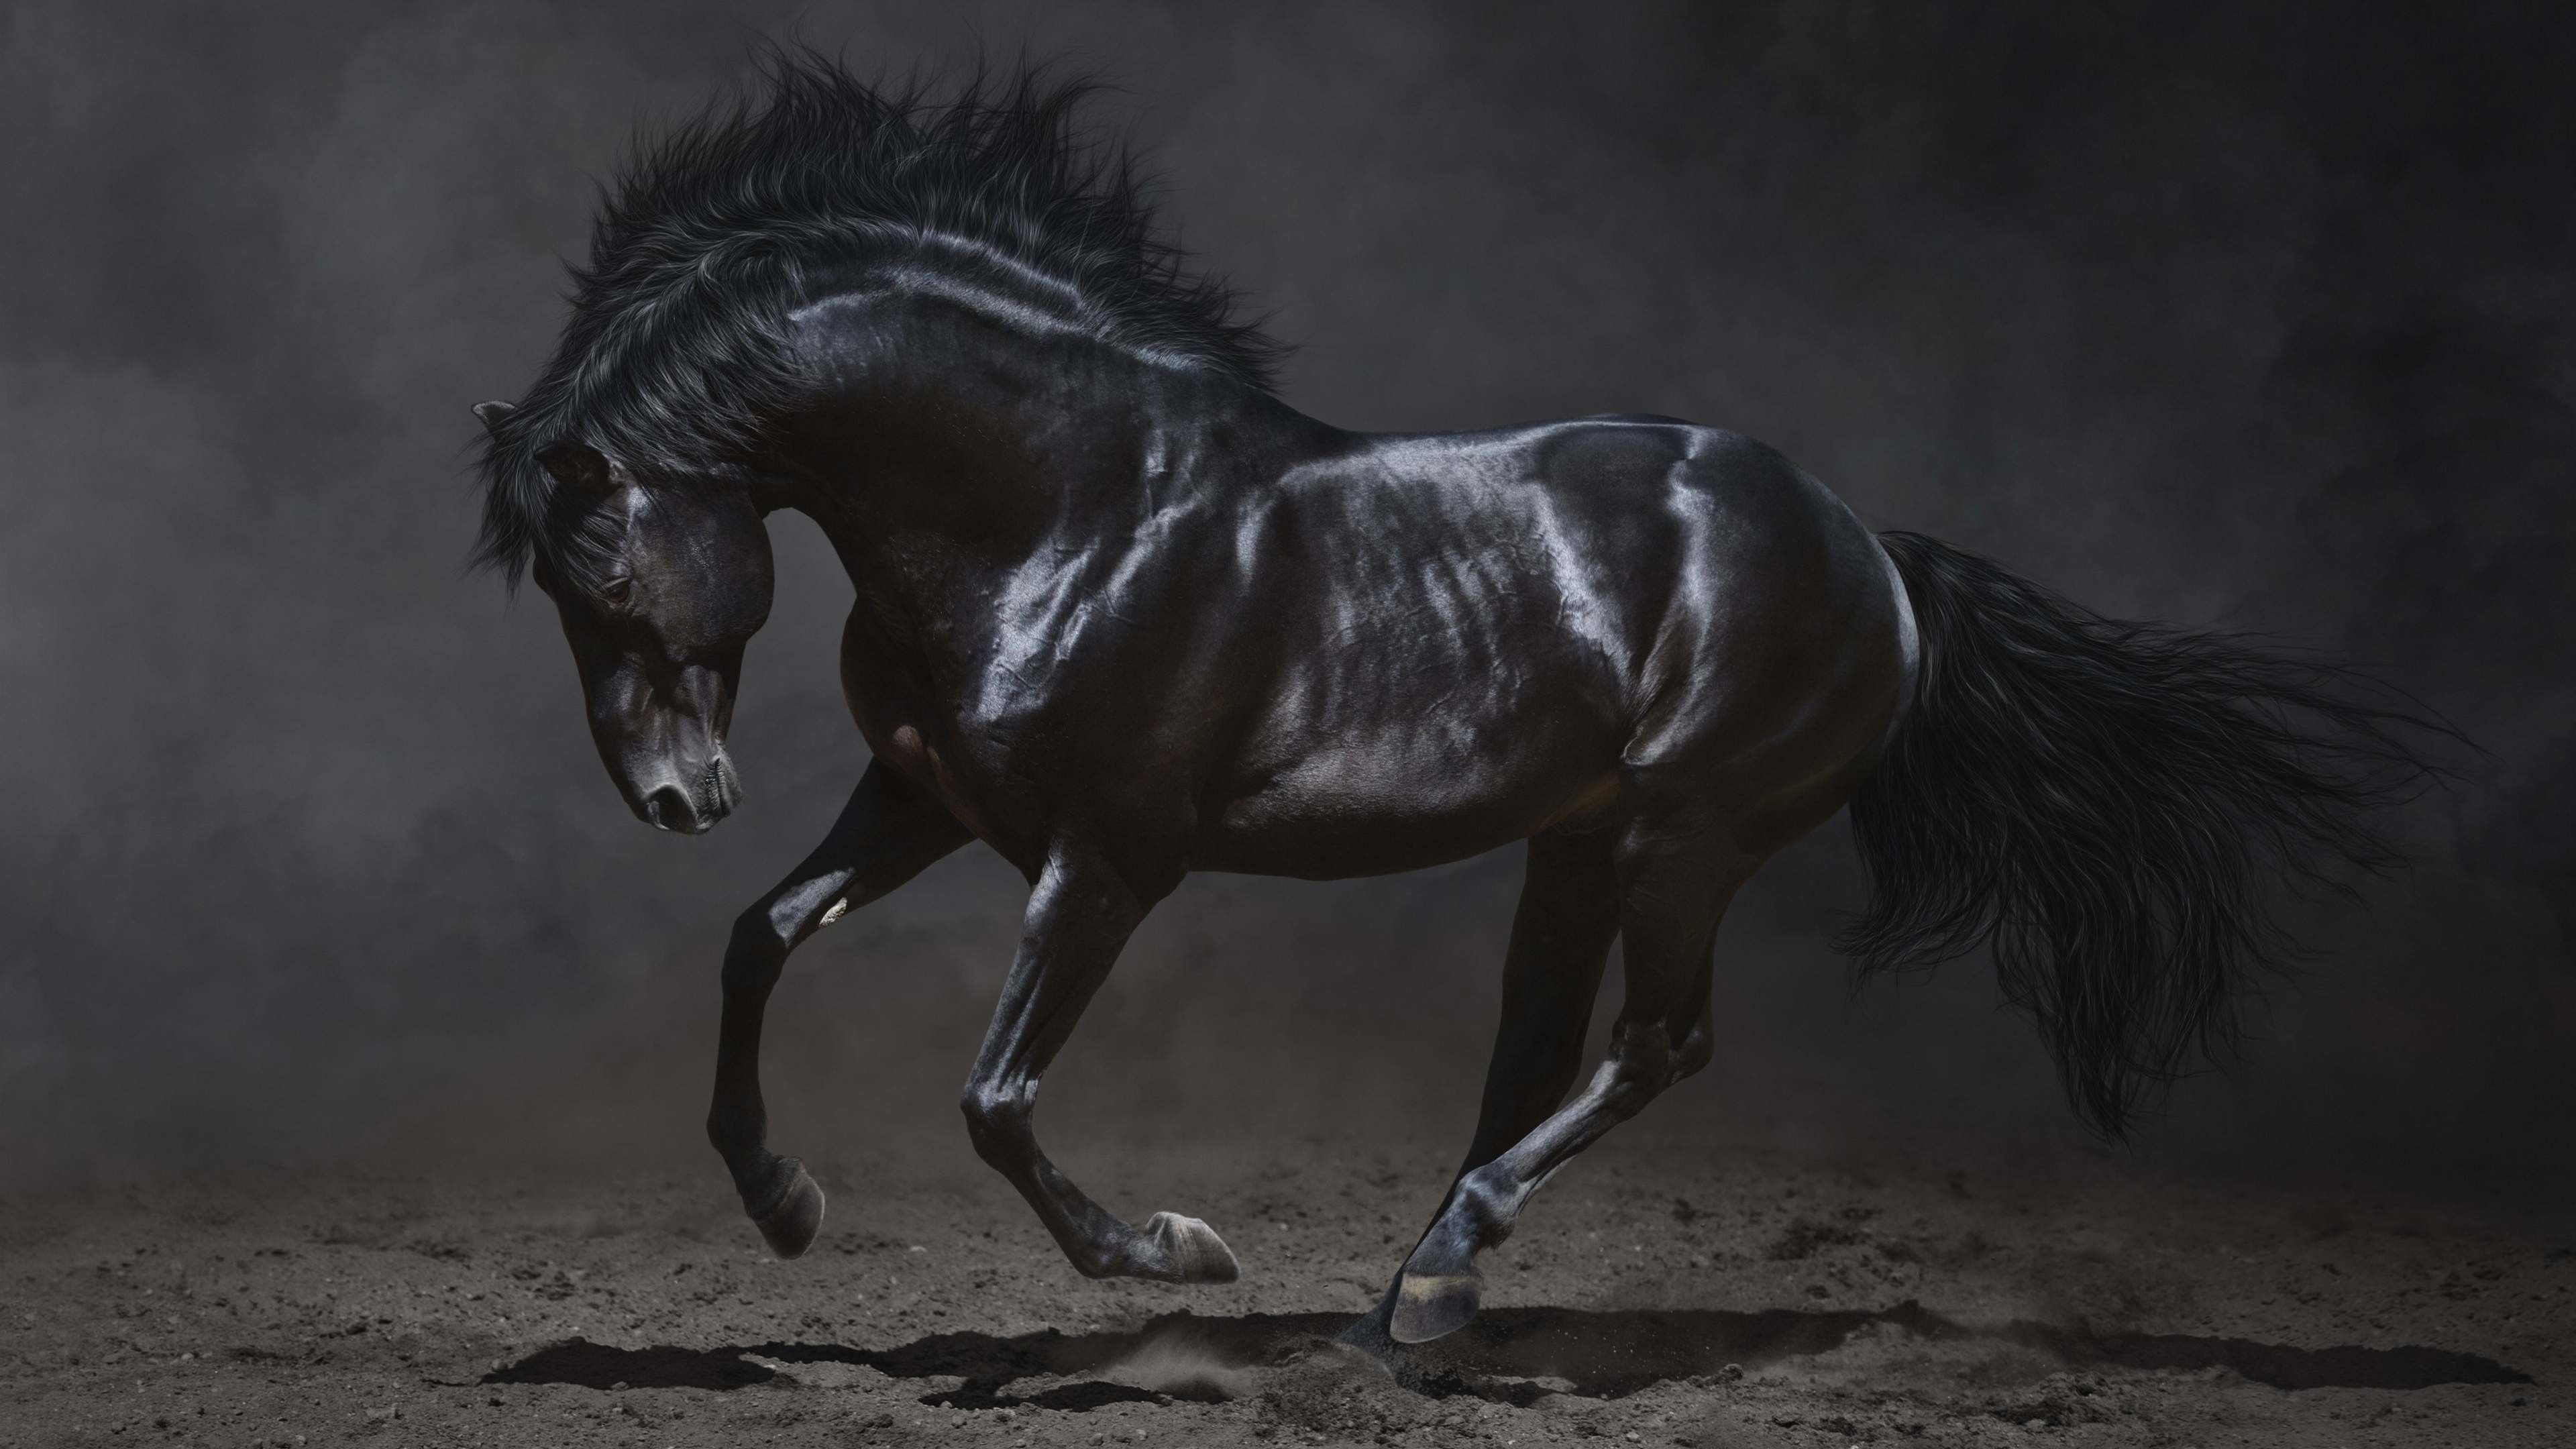 Black Horse Wallpapers Top Free Black Horse Backgrounds